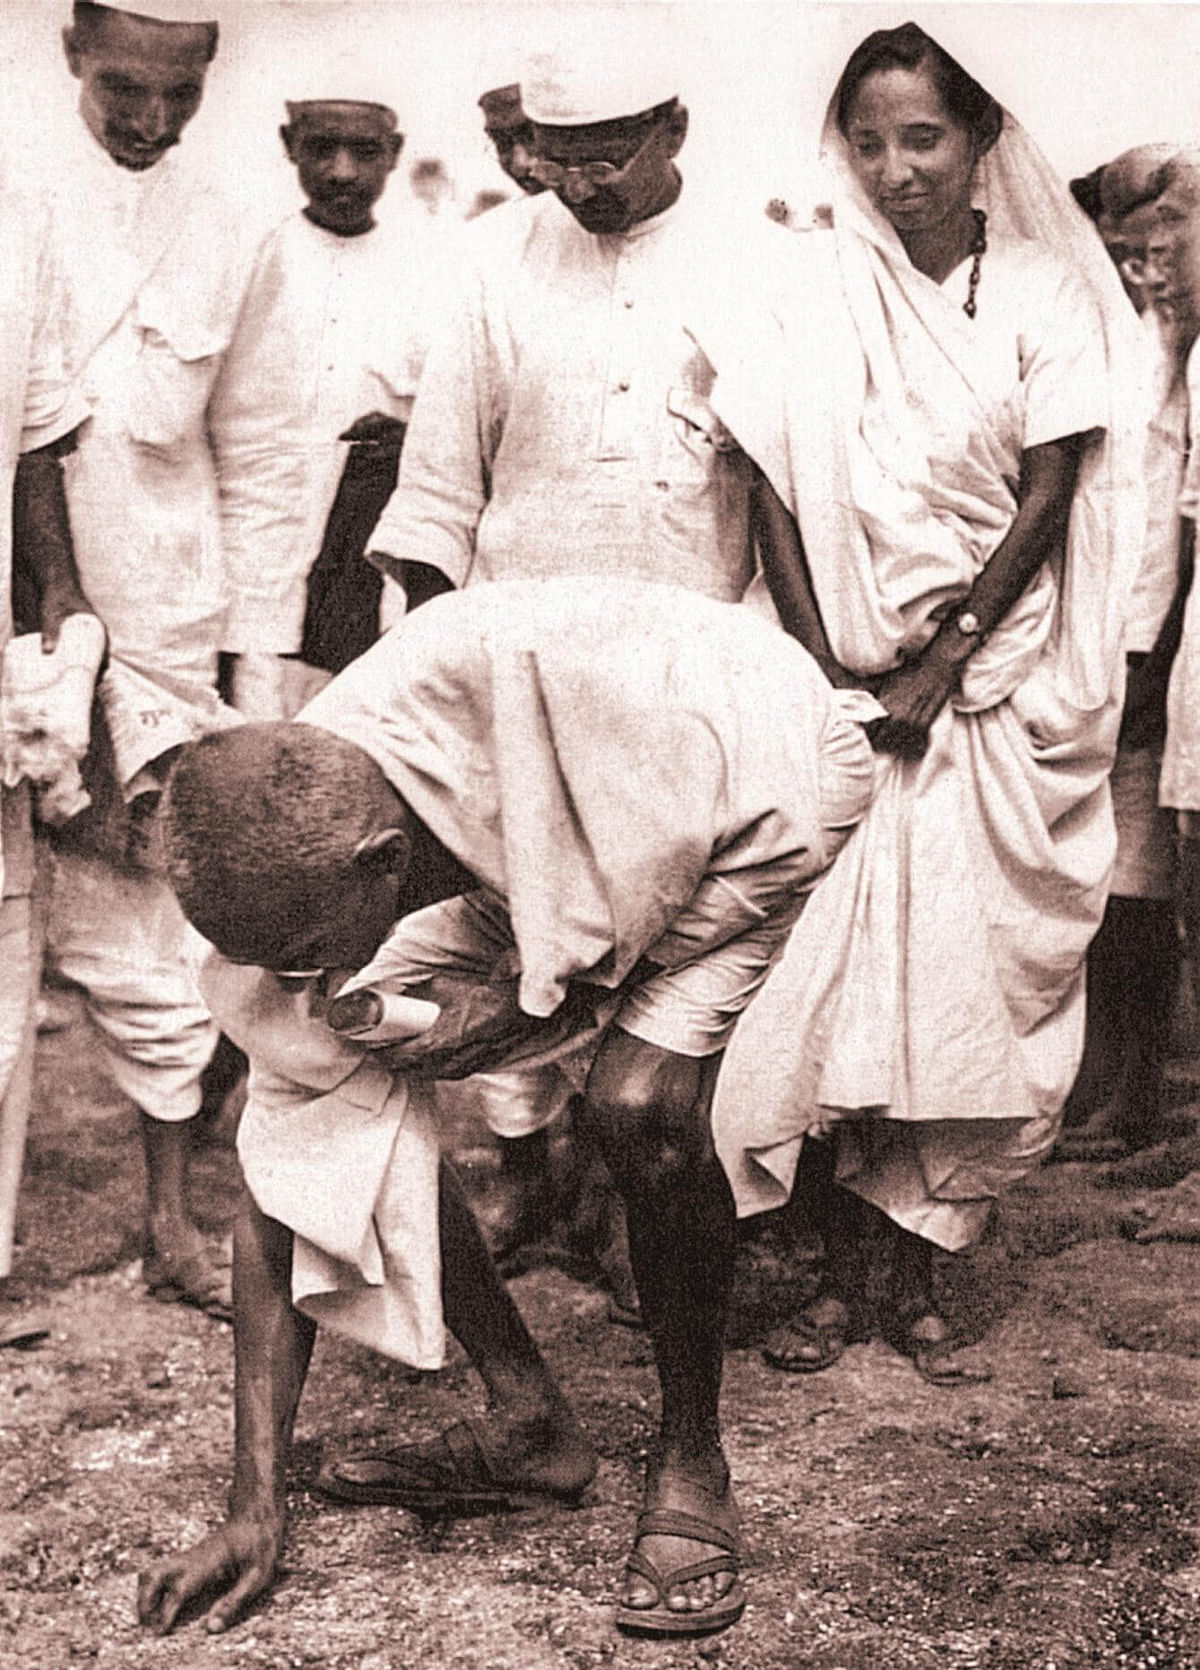 Gandhi ceremoniously breaking the salt law by picking up a lump of natural salt at Dandi on Apirl 6, 1930